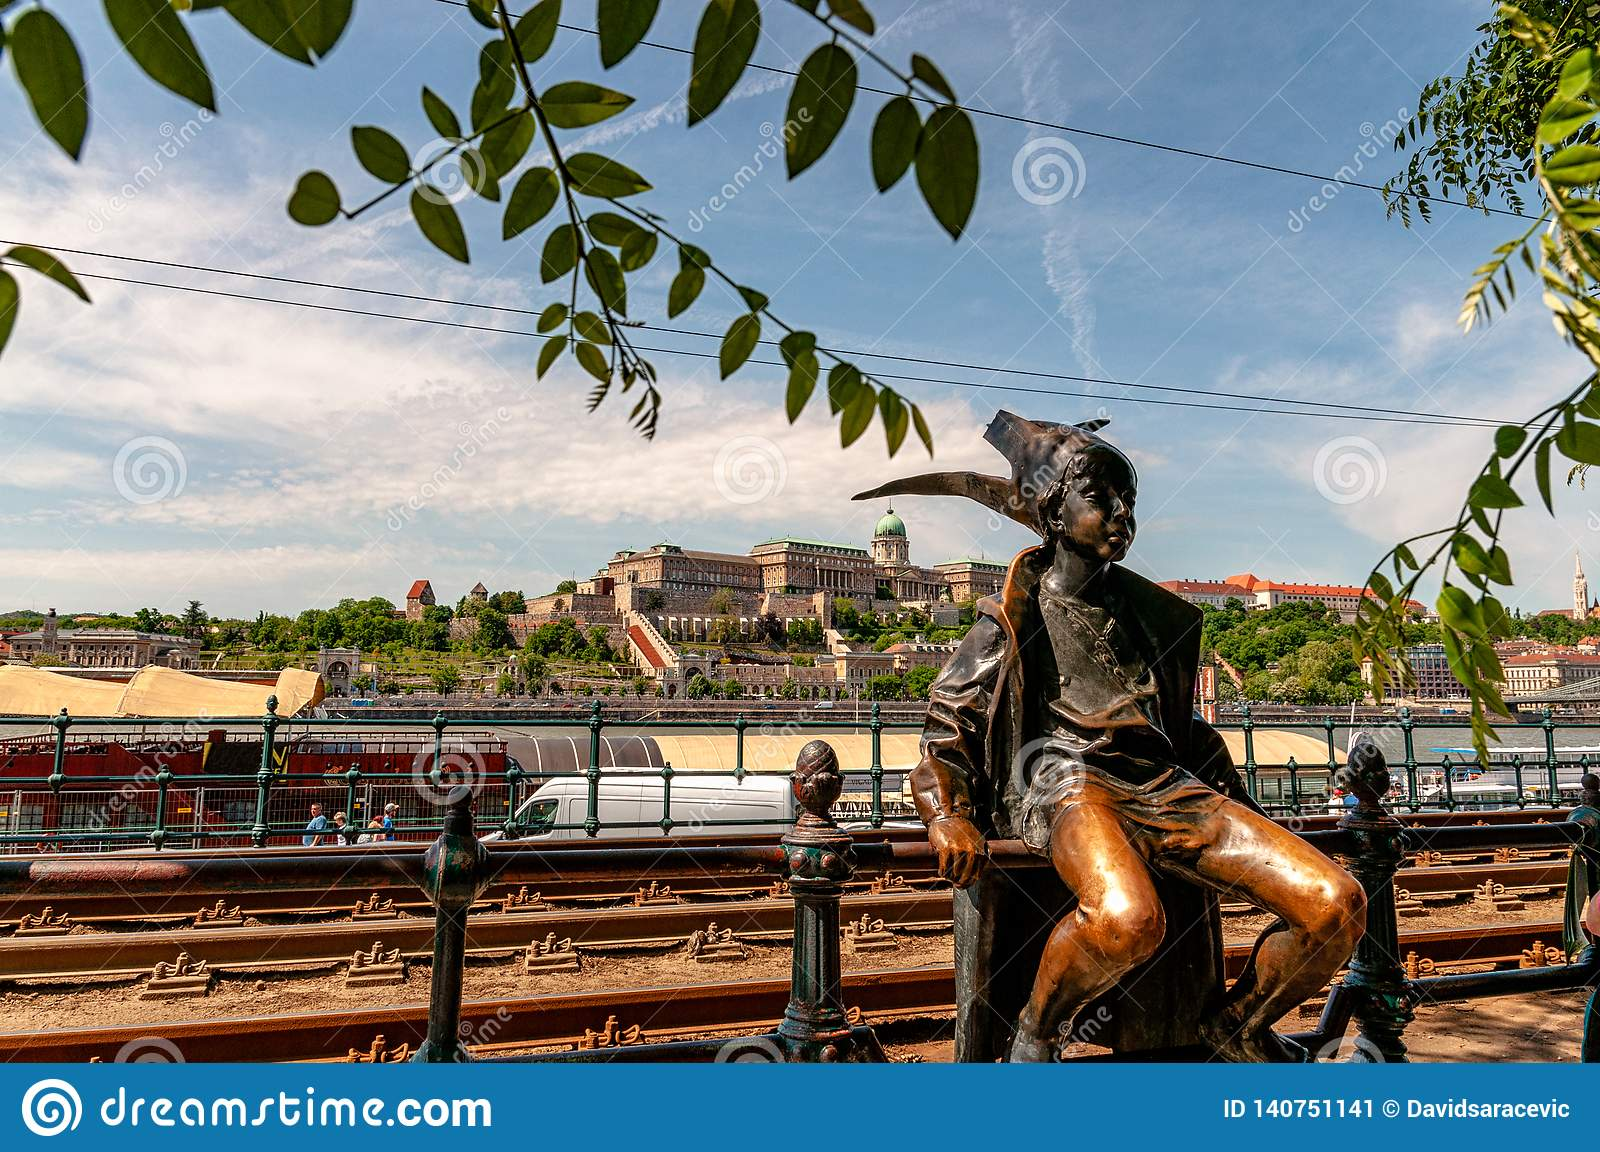 Image of little princess statue in budapest